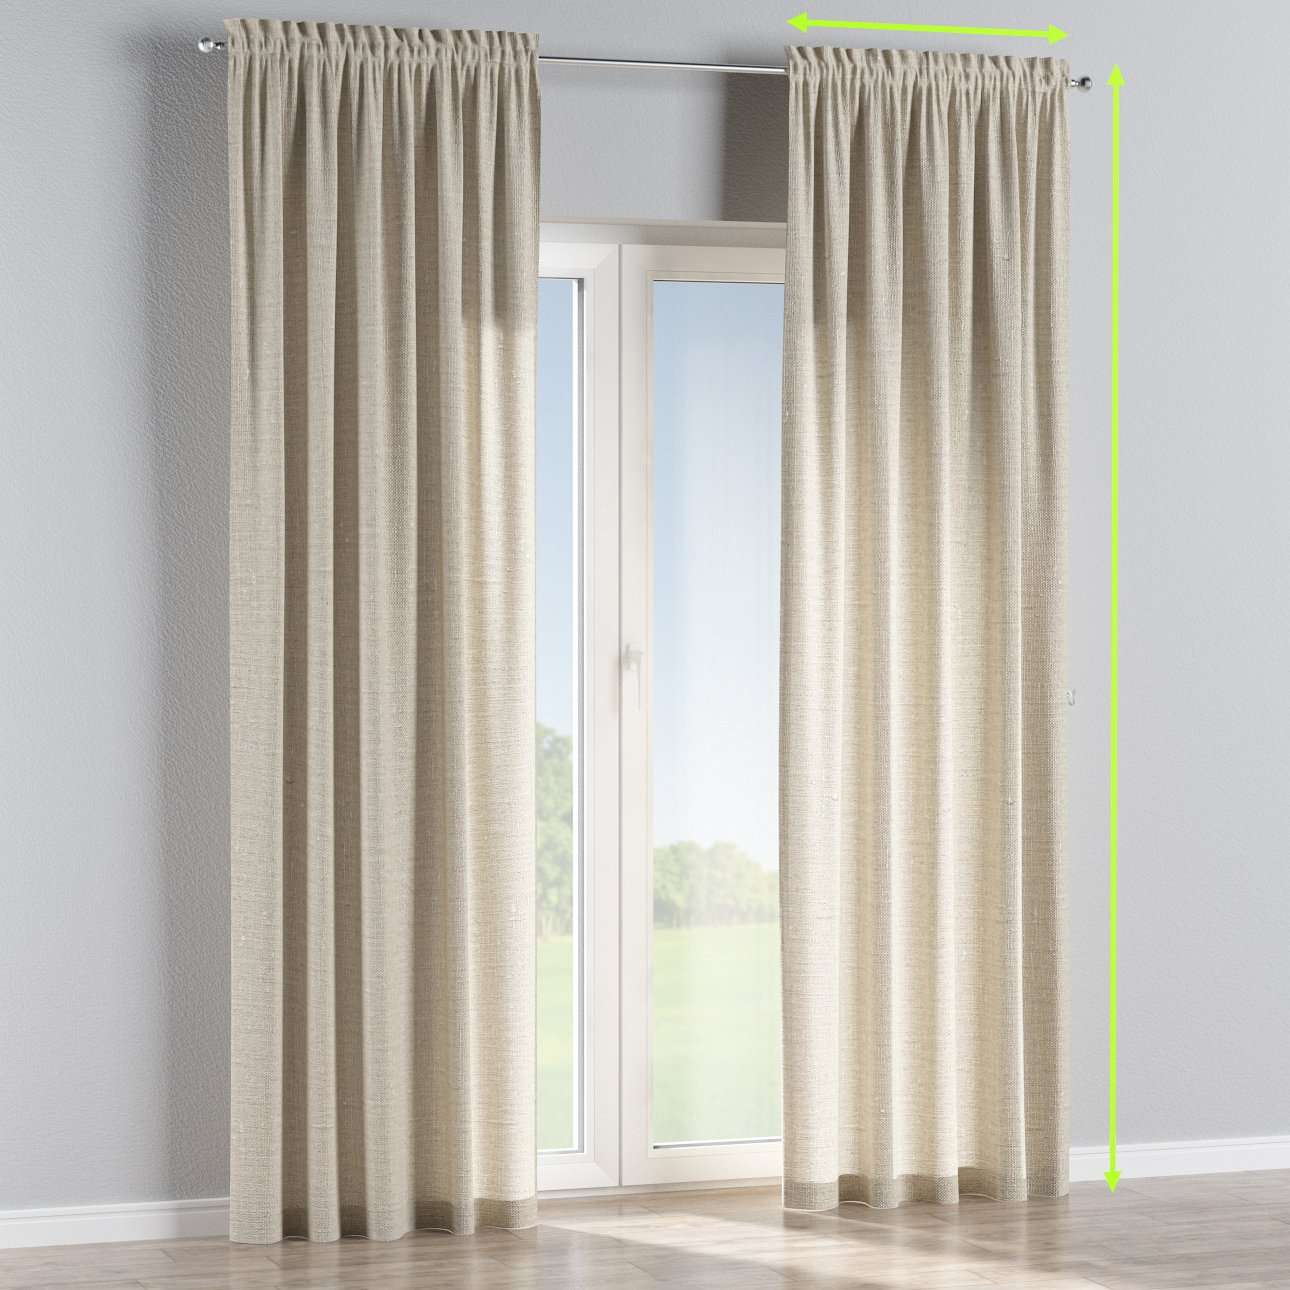 Slot and frill curtains in collection Linen , fabric: 392-05